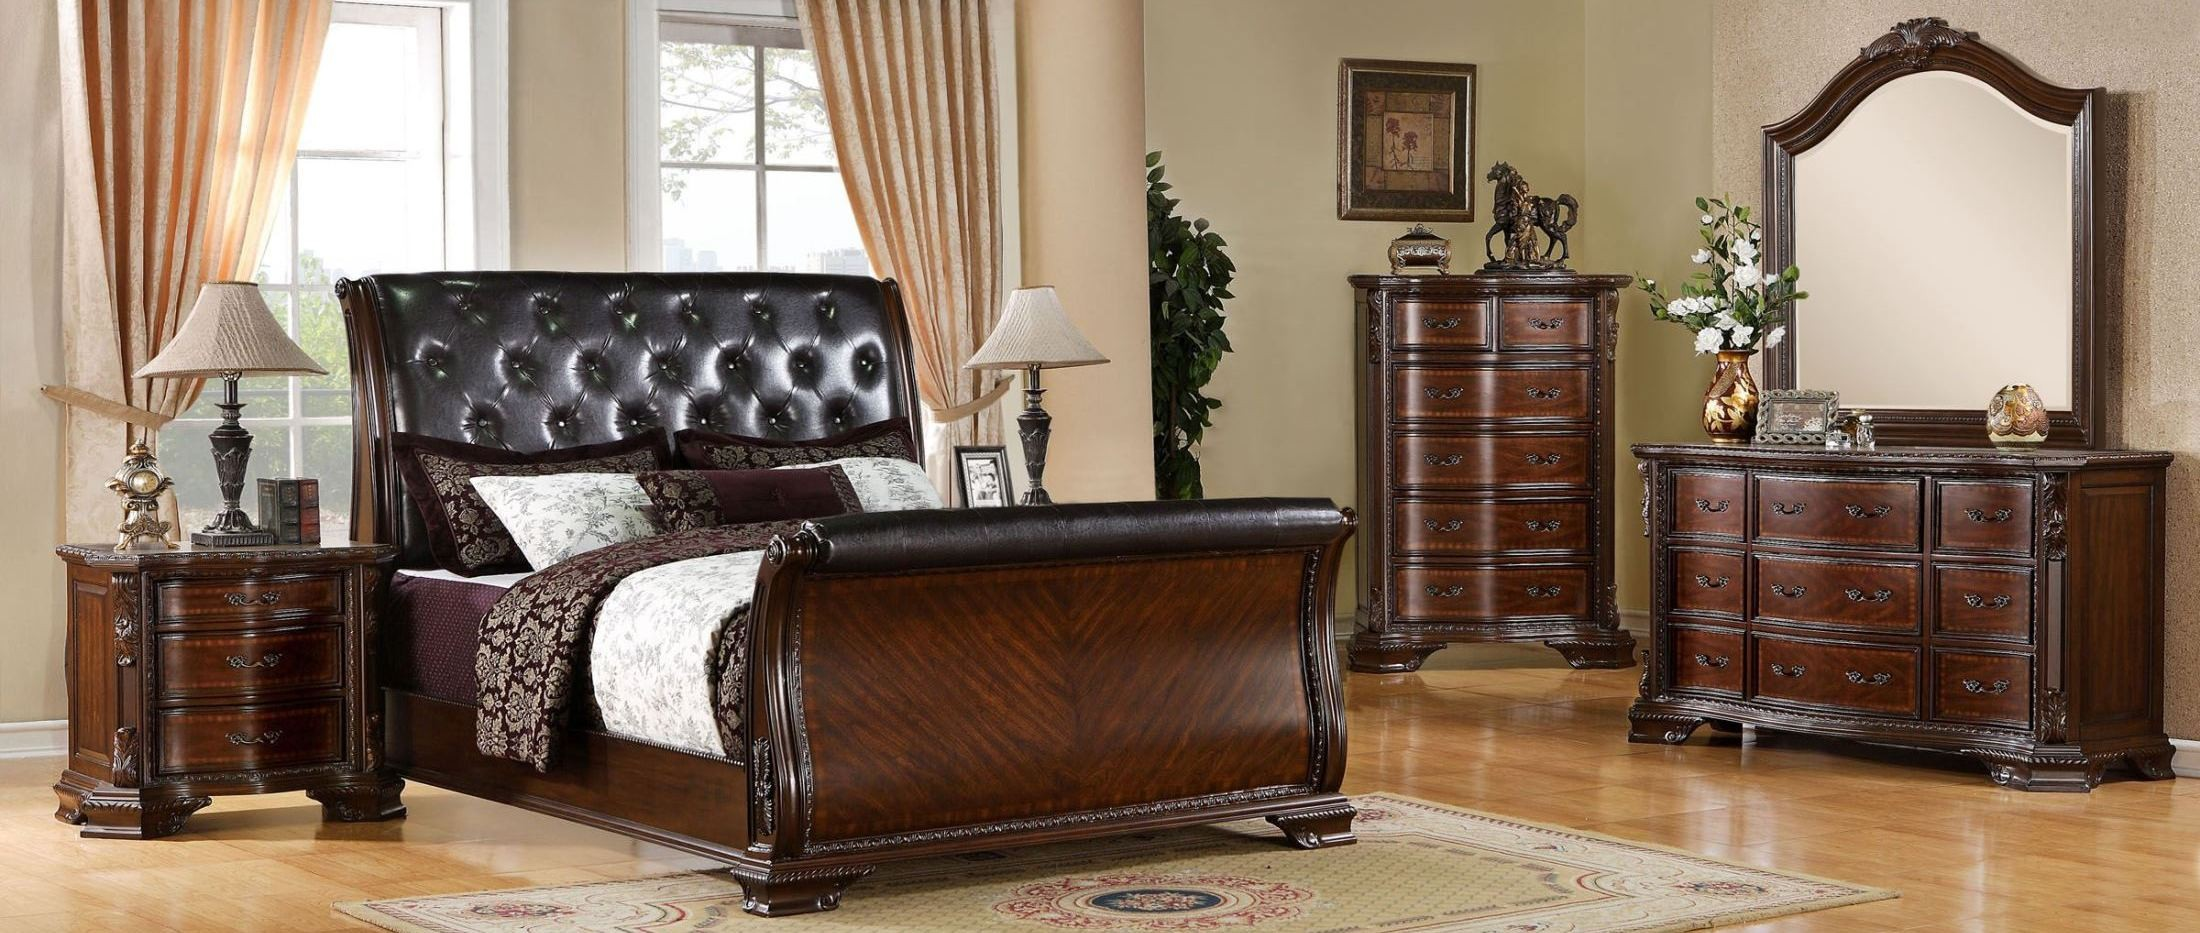 South Yorkshire Brown Cherry Sleigh Bedroom Set Cm7267q Bed Furniture Of America